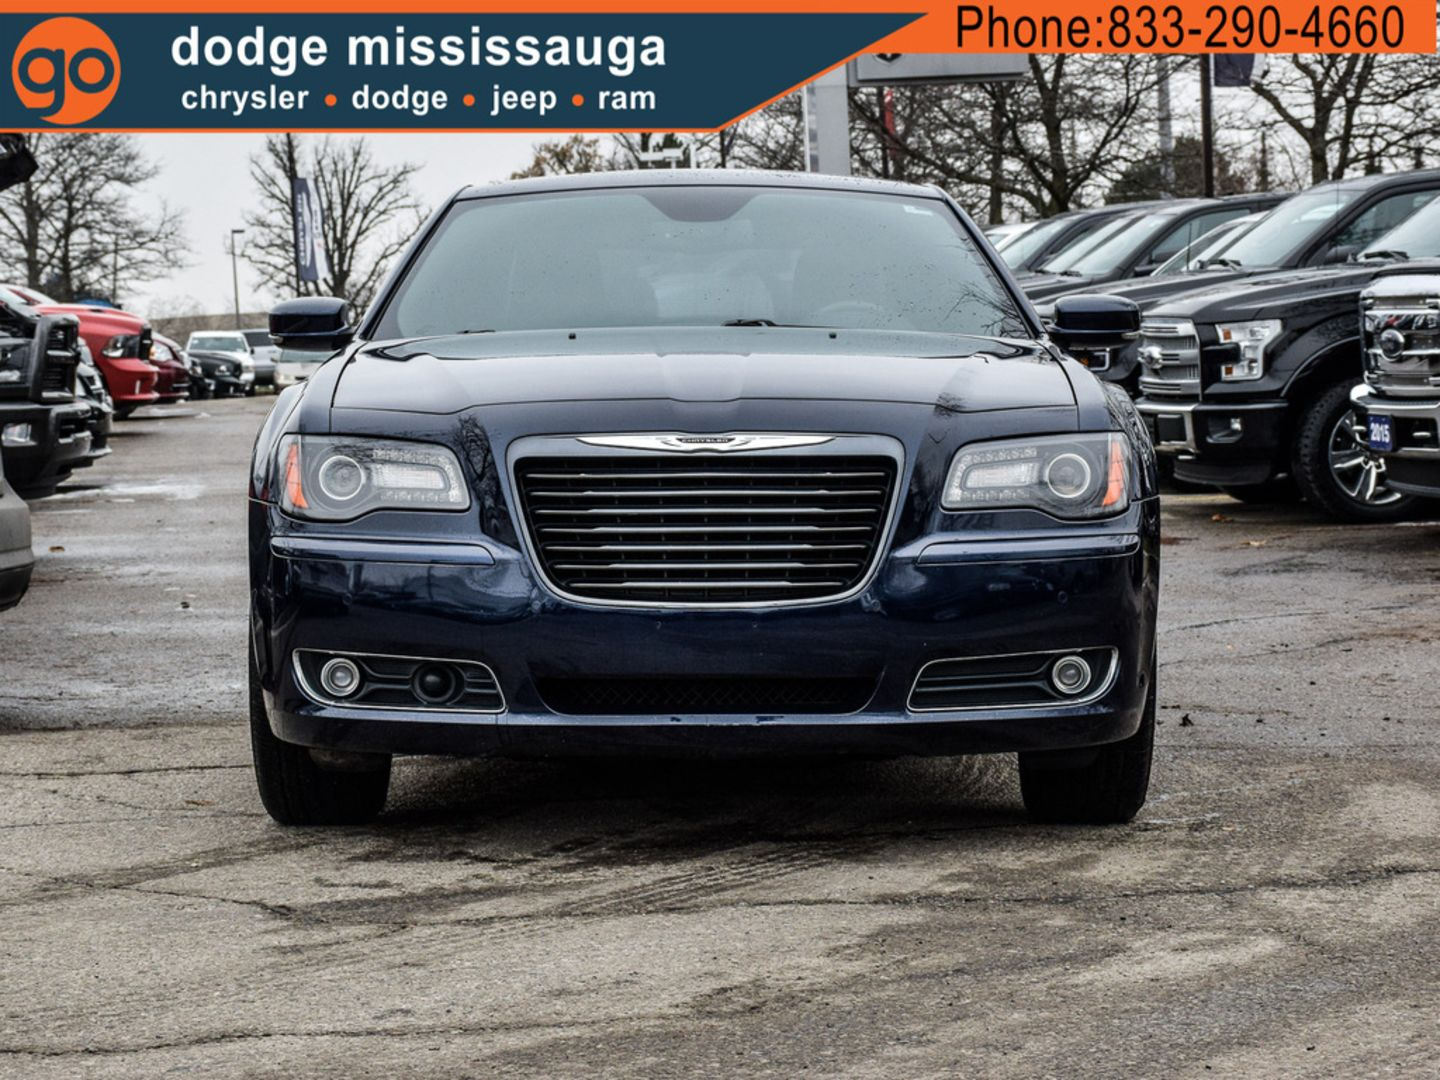 2014 Chrysler 300 300S for sale in Mississauga, Ontario